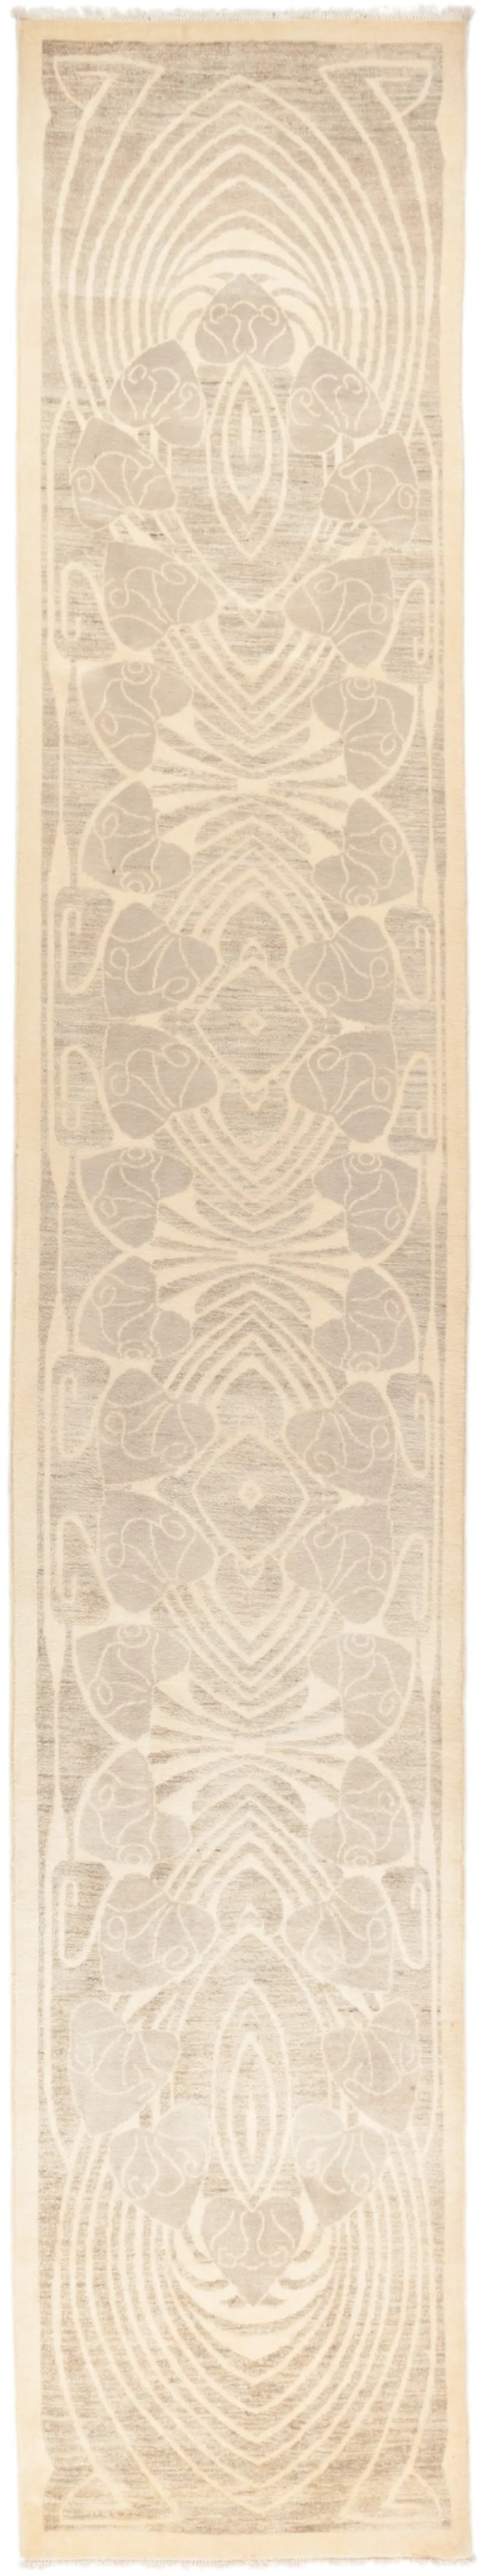 One-of-a-Kind Heiner Hand Knotted Wool Beige Area Rug